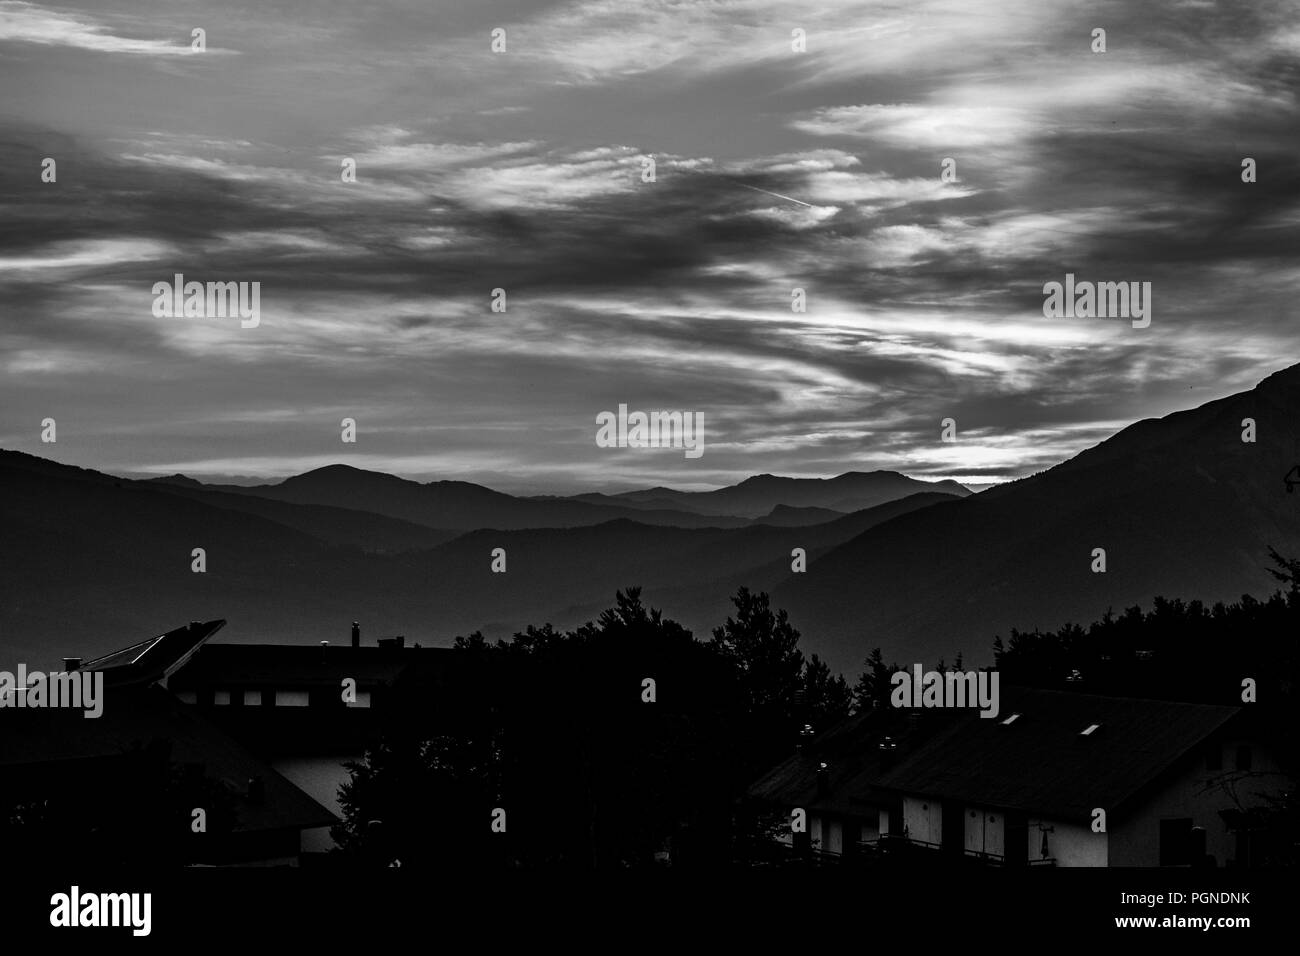 Profile of mountain and city with cloudy sky in black and white Stock Photo